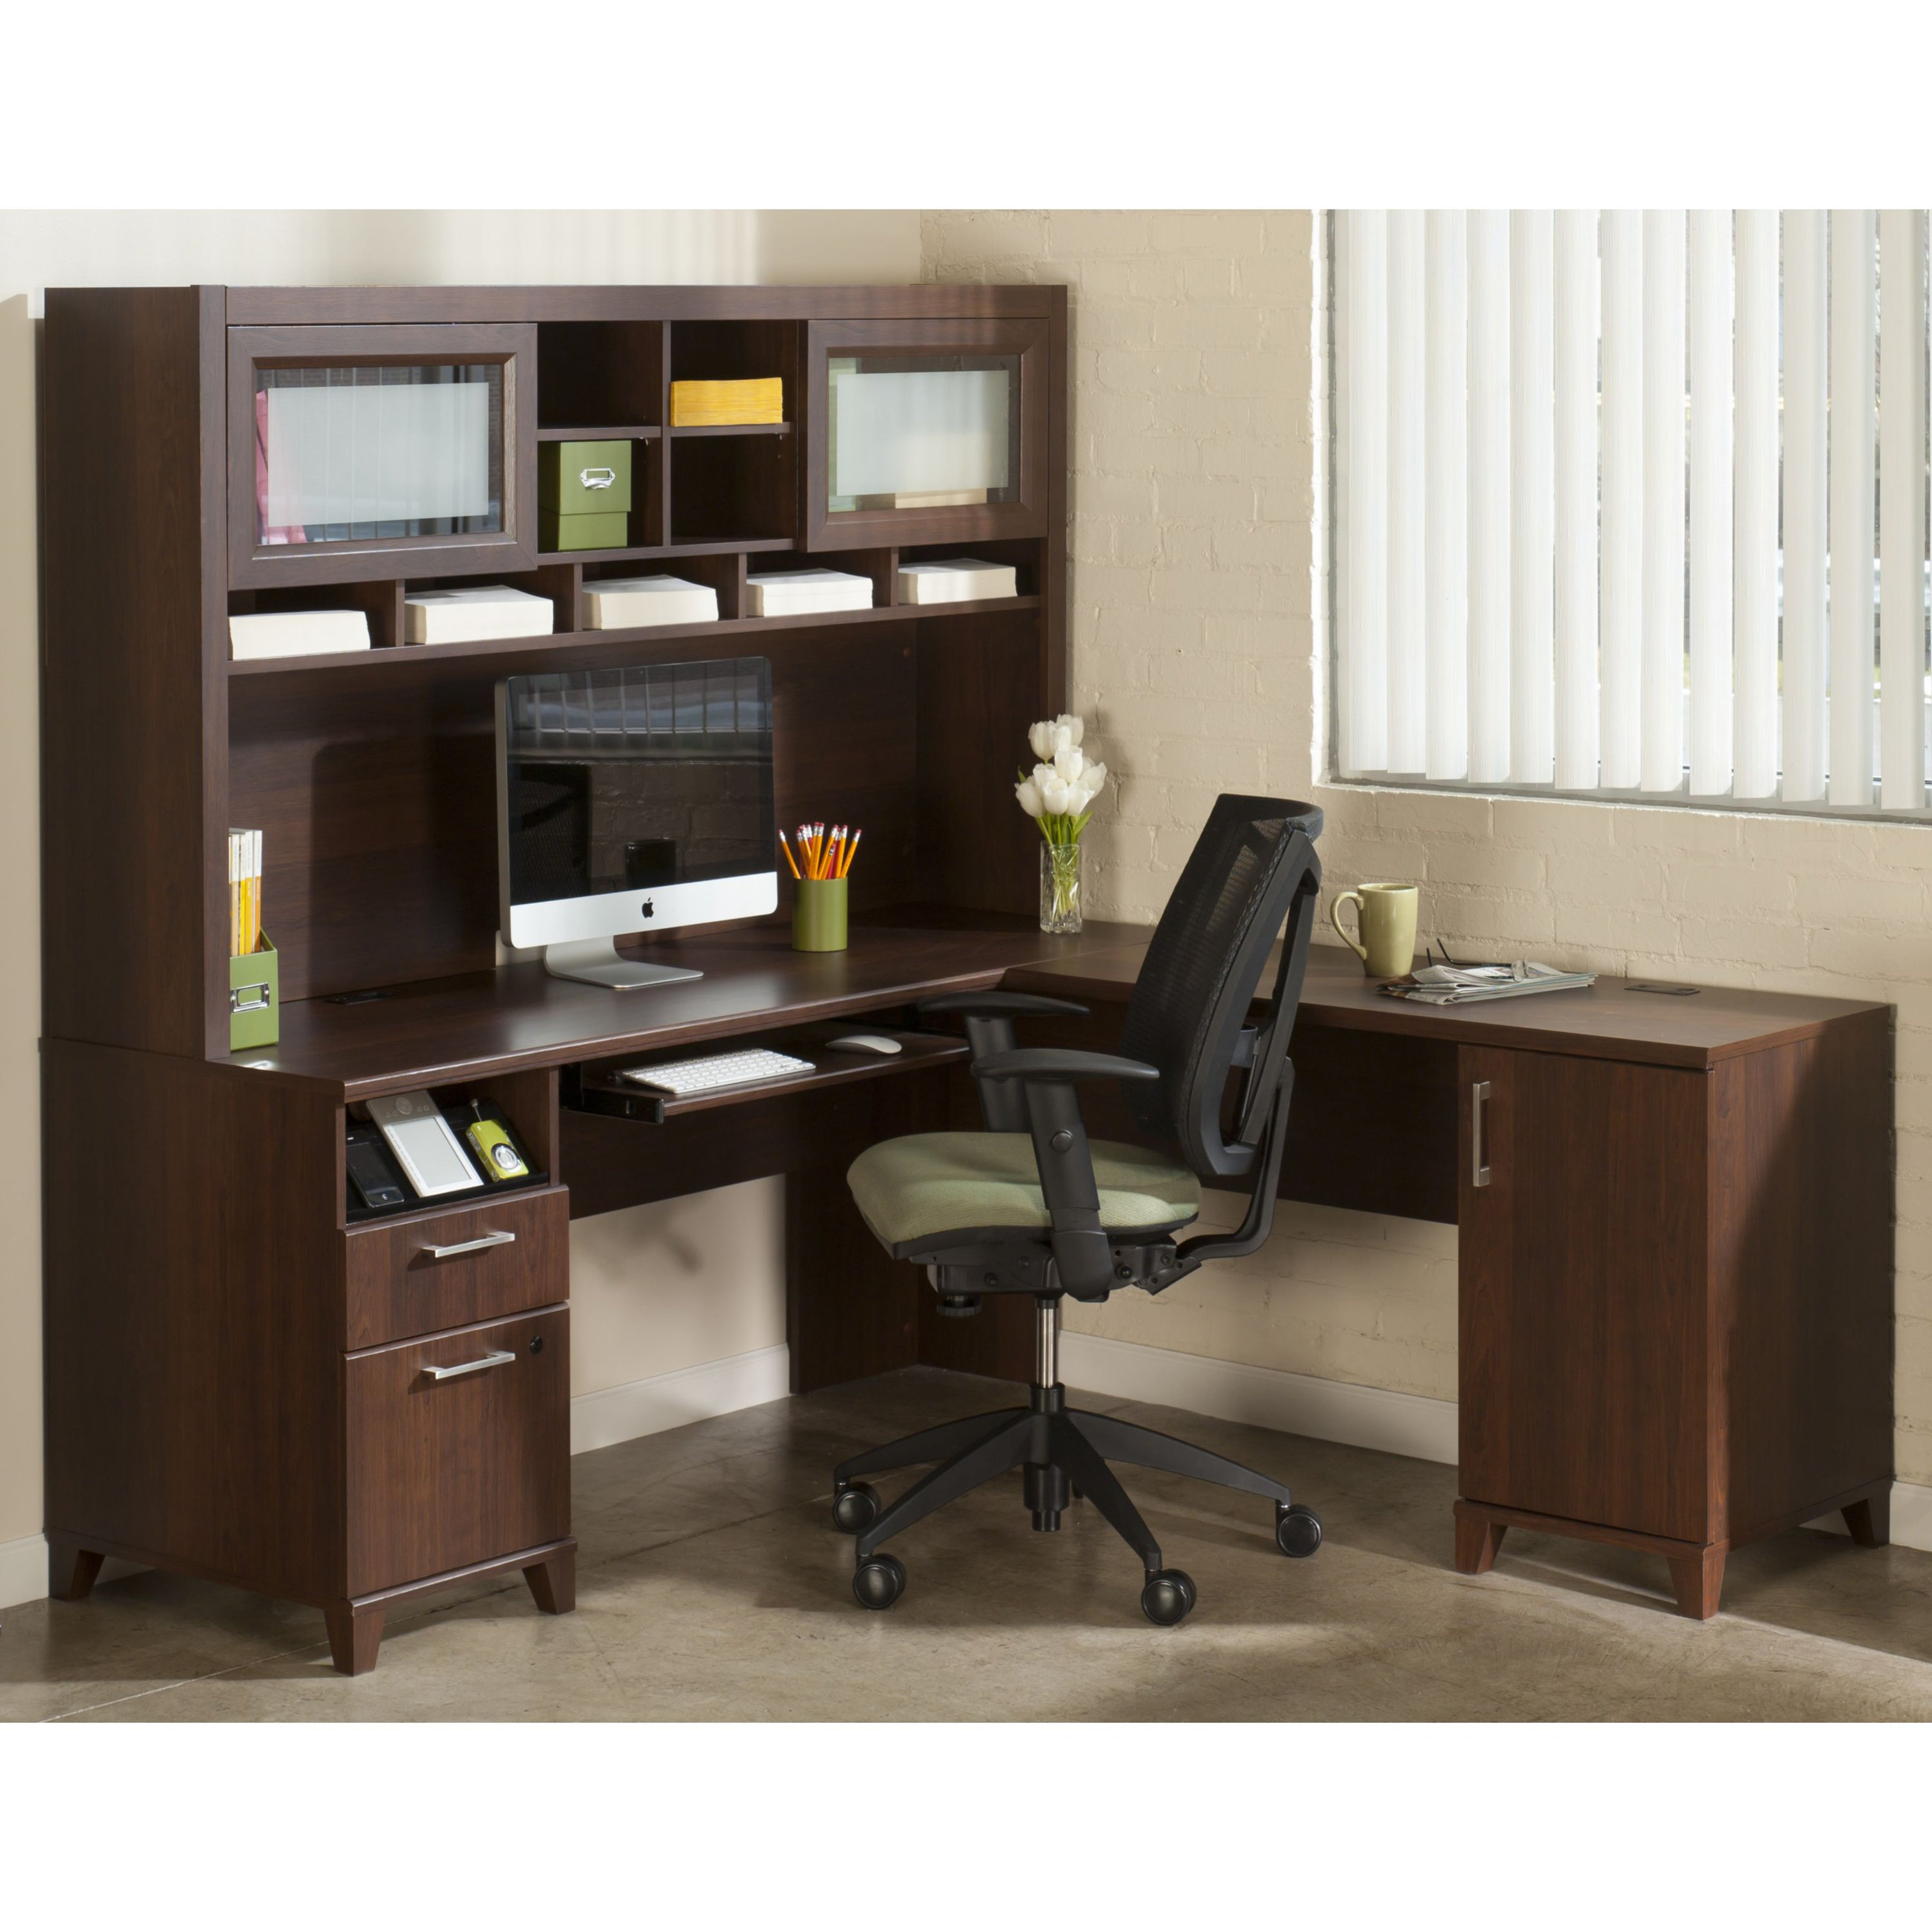 Cheap L Shaped Desk with hutch and storage ideas plus computer set and black armchair